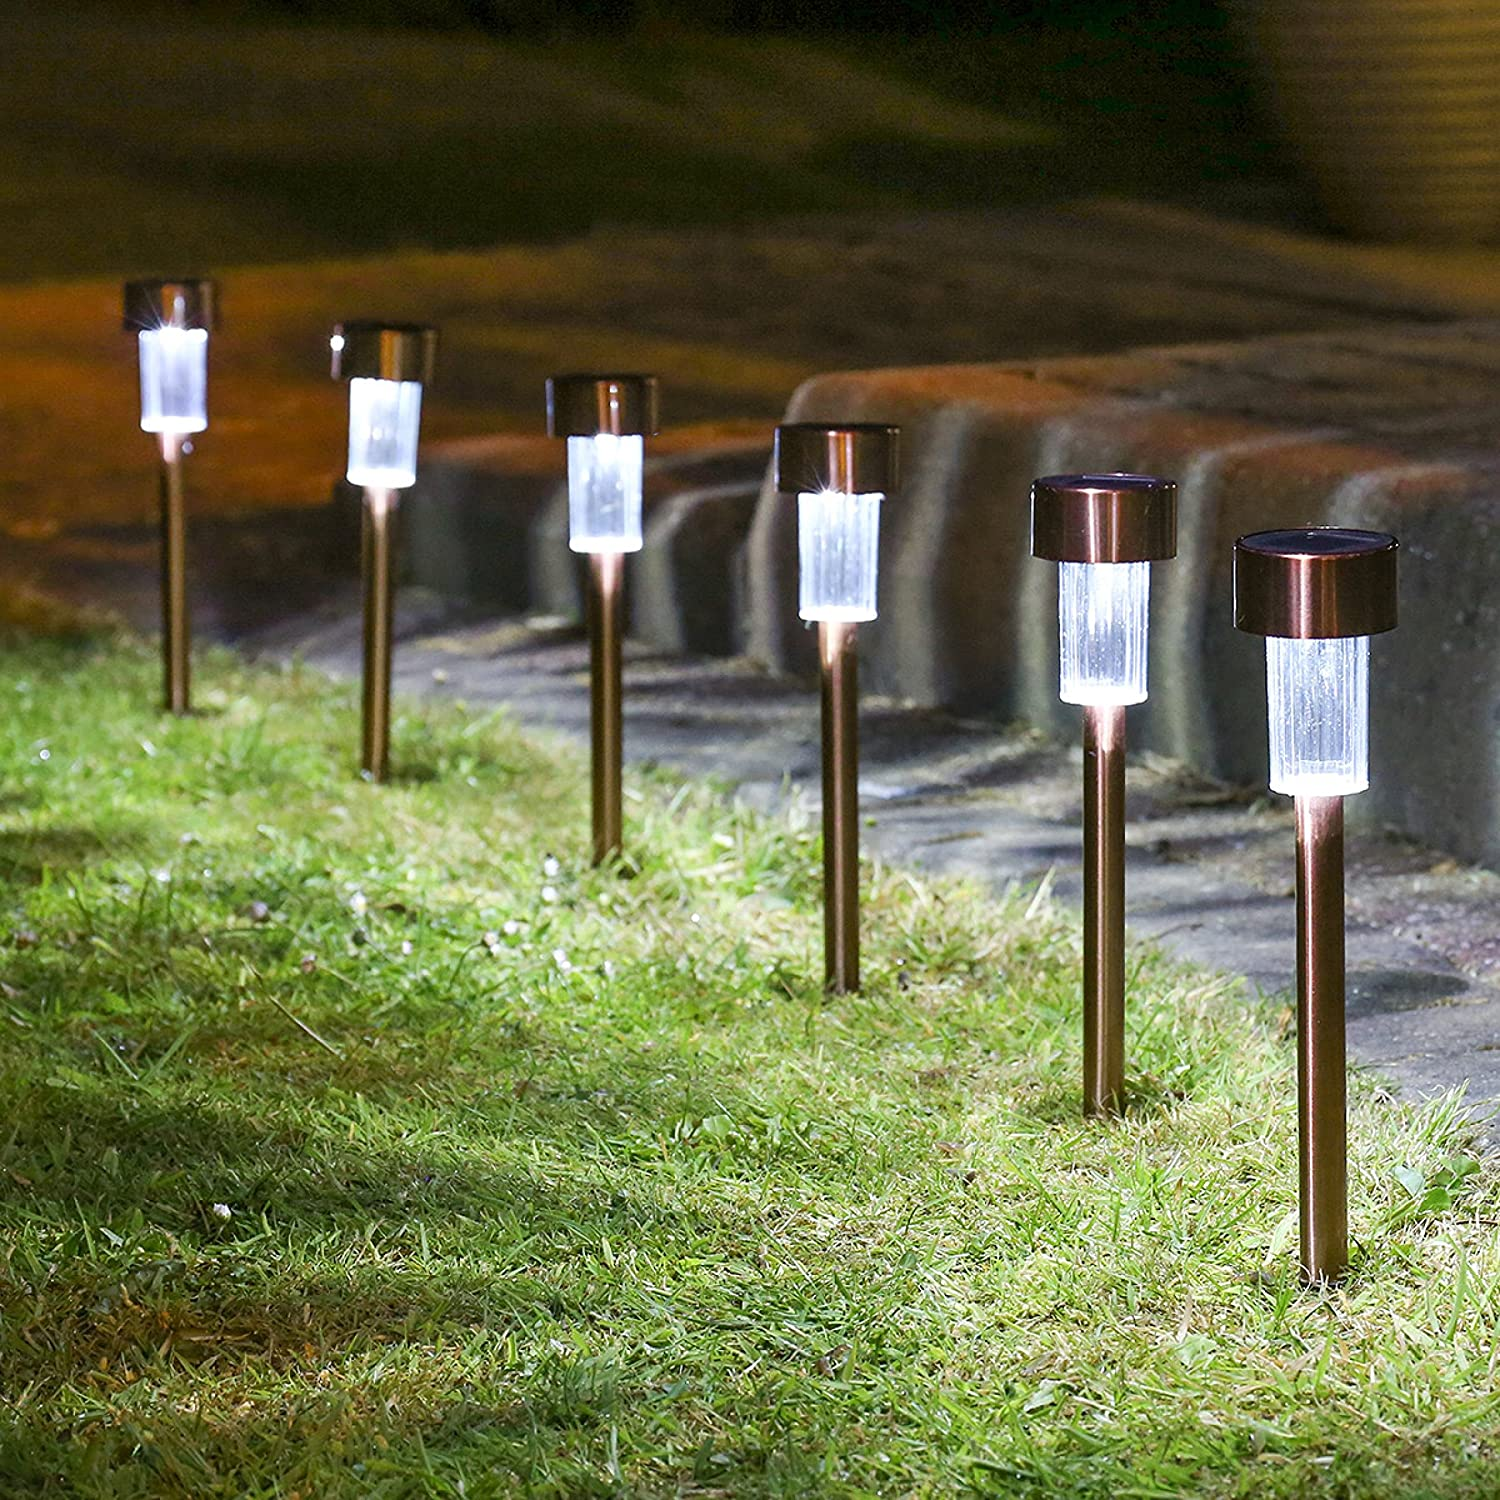 10 x stainless steel solar lights powered garden post path led lawn patio ebay. Black Bedroom Furniture Sets. Home Design Ideas